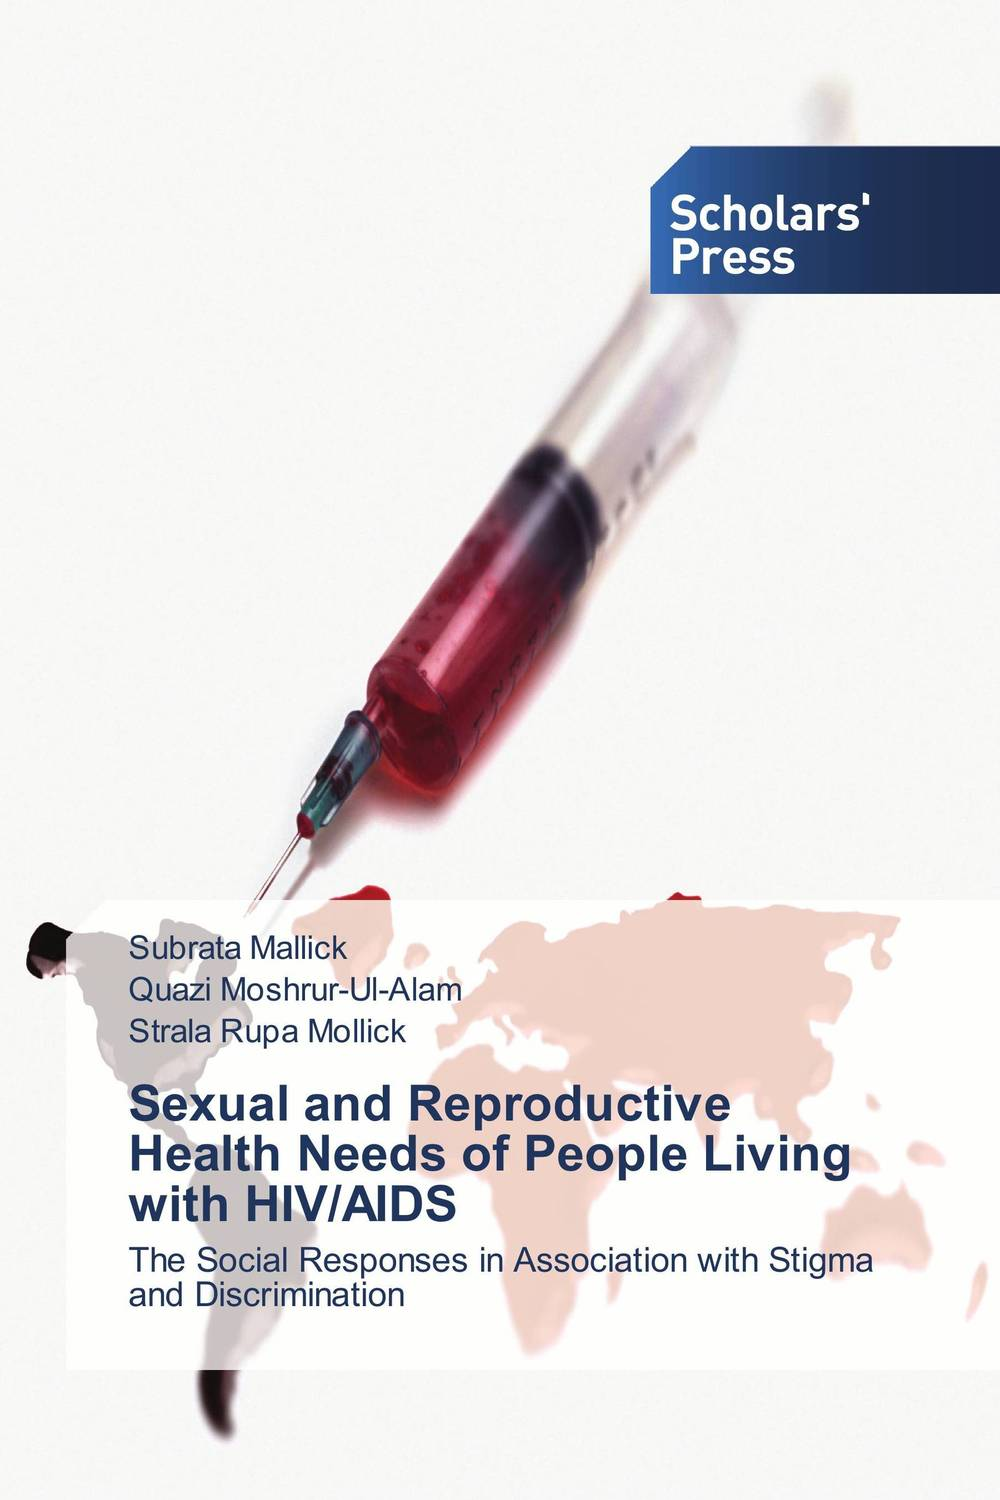 Sexual and Reproductive Health Needs of People Living with HIV/AIDS samhaa samir ibrahim mohammed and sherif mohamed attia houria family relations and reproductive health through early marriage